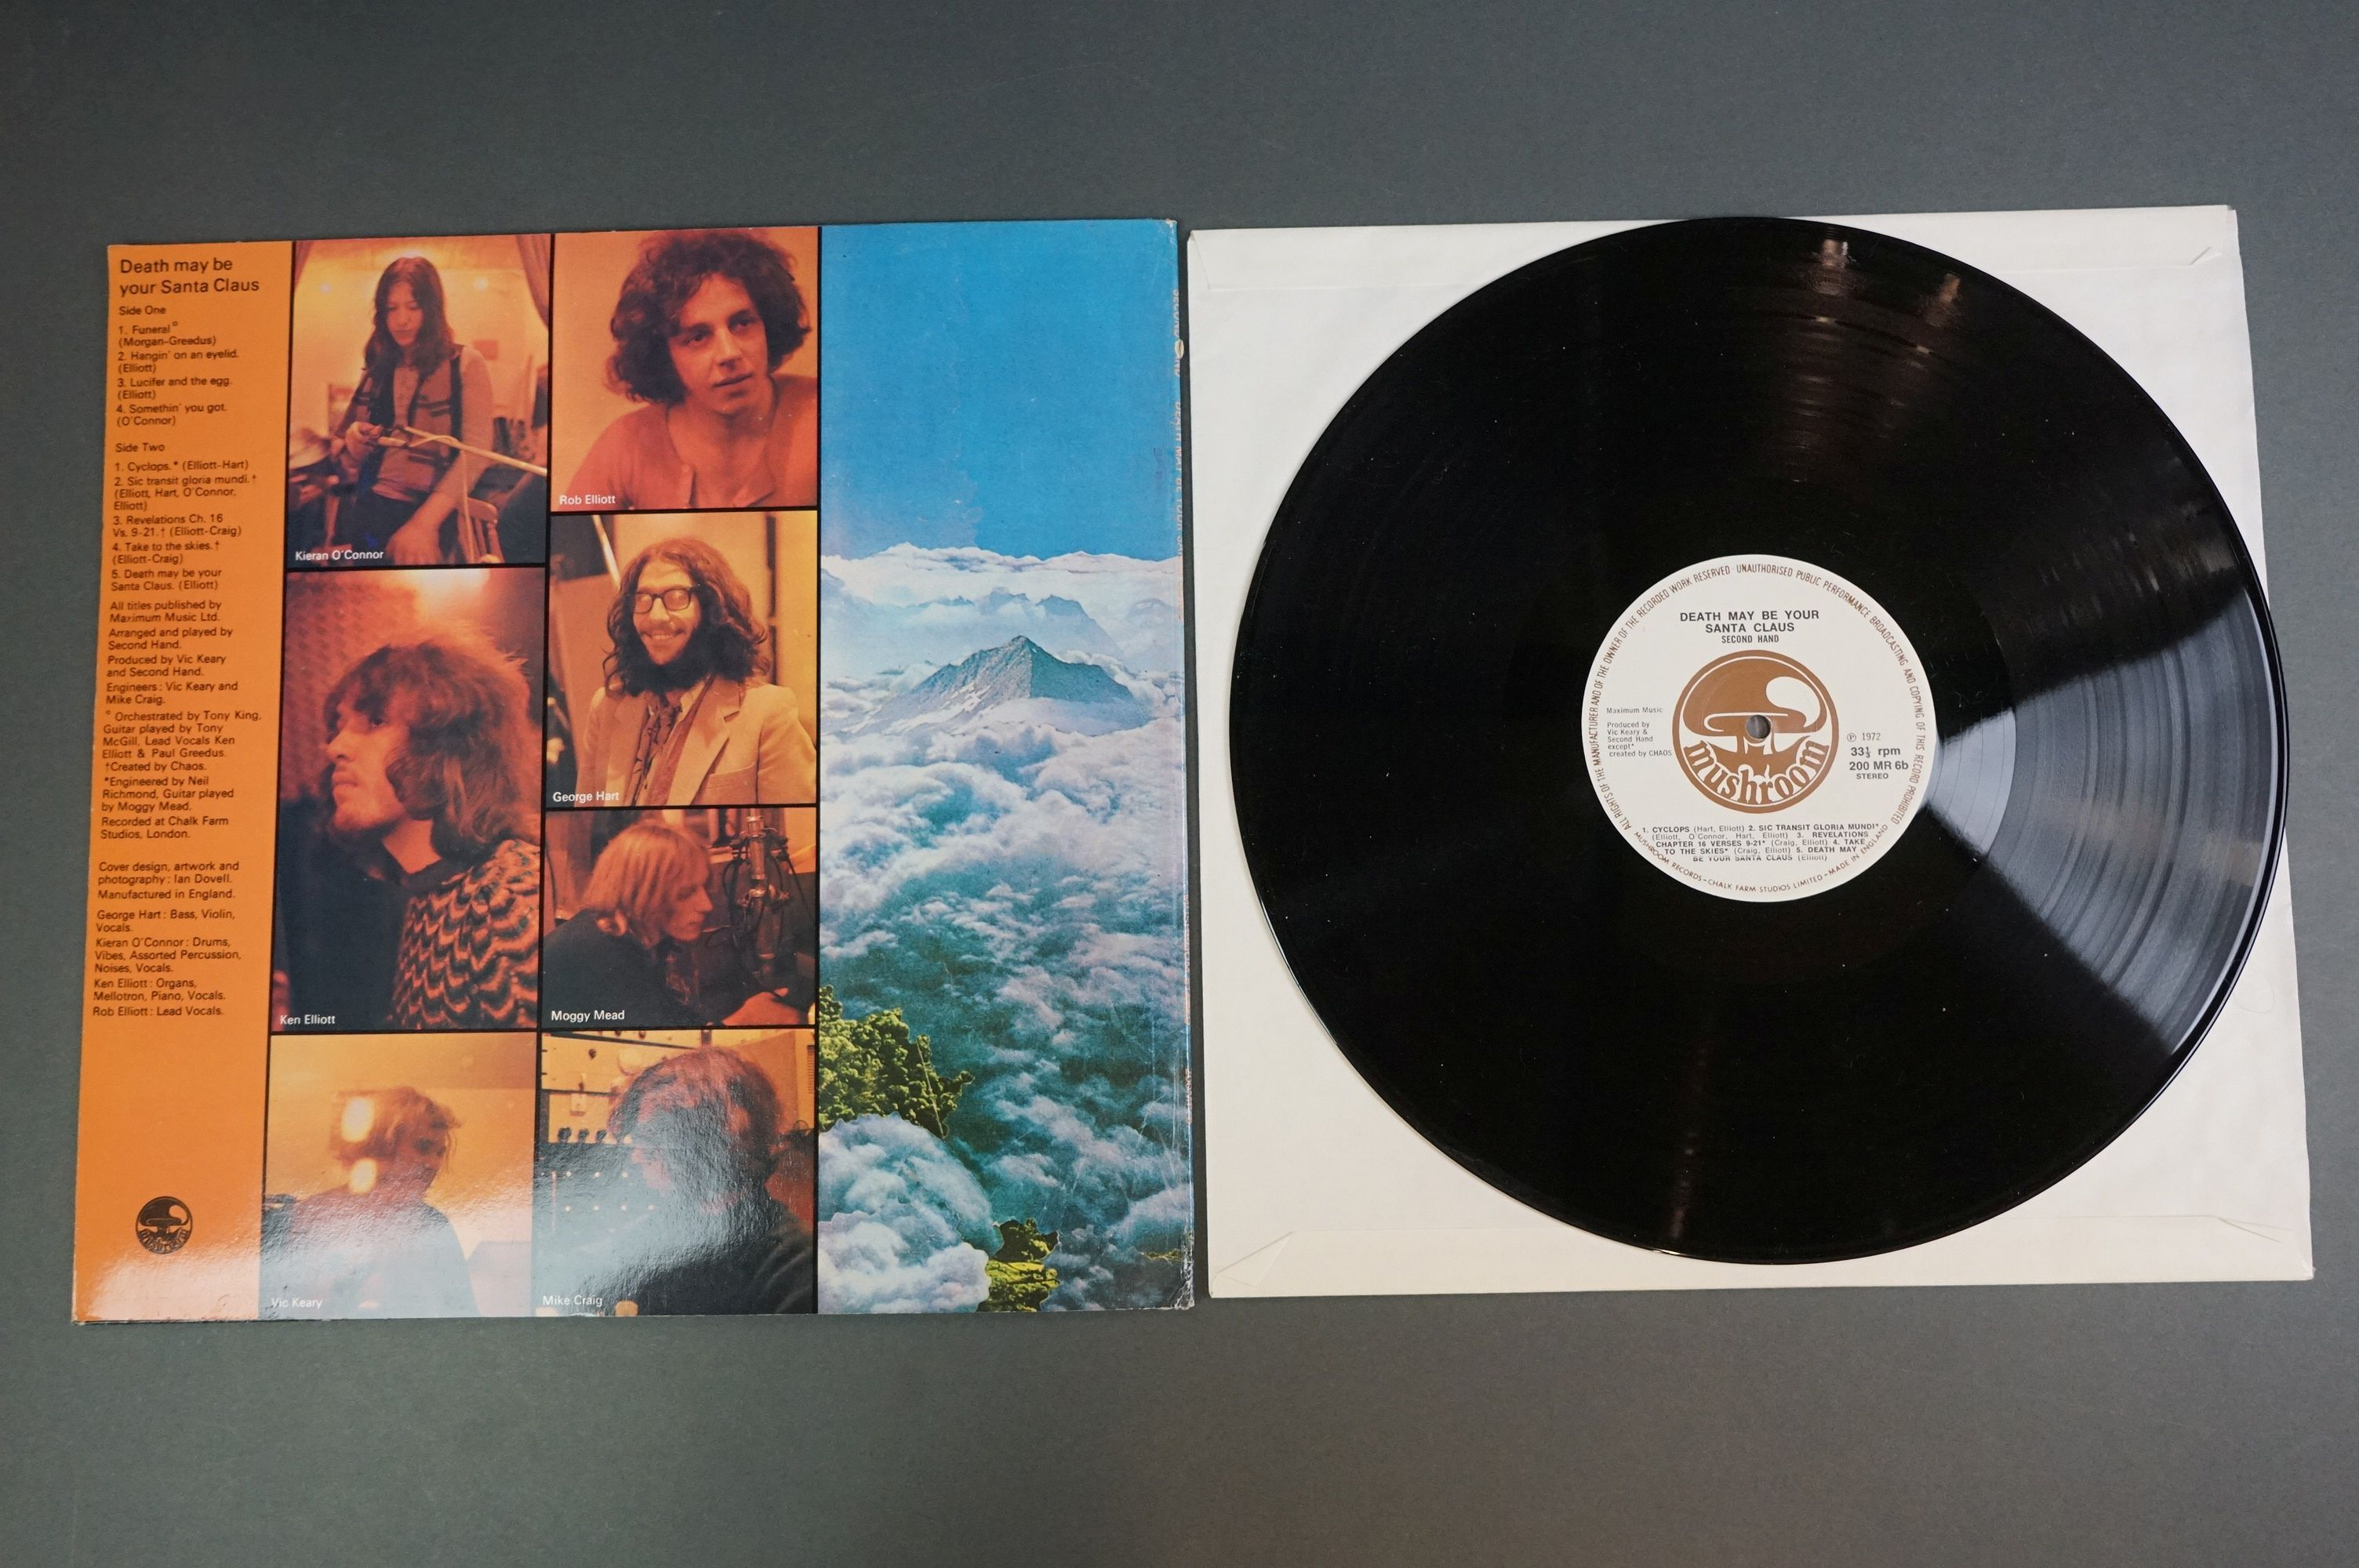 Vinyl - Two Second Hand LPs to include Death May Be Your Santa Claus (Mushroom 200) and Reality on - Image 3 of 4